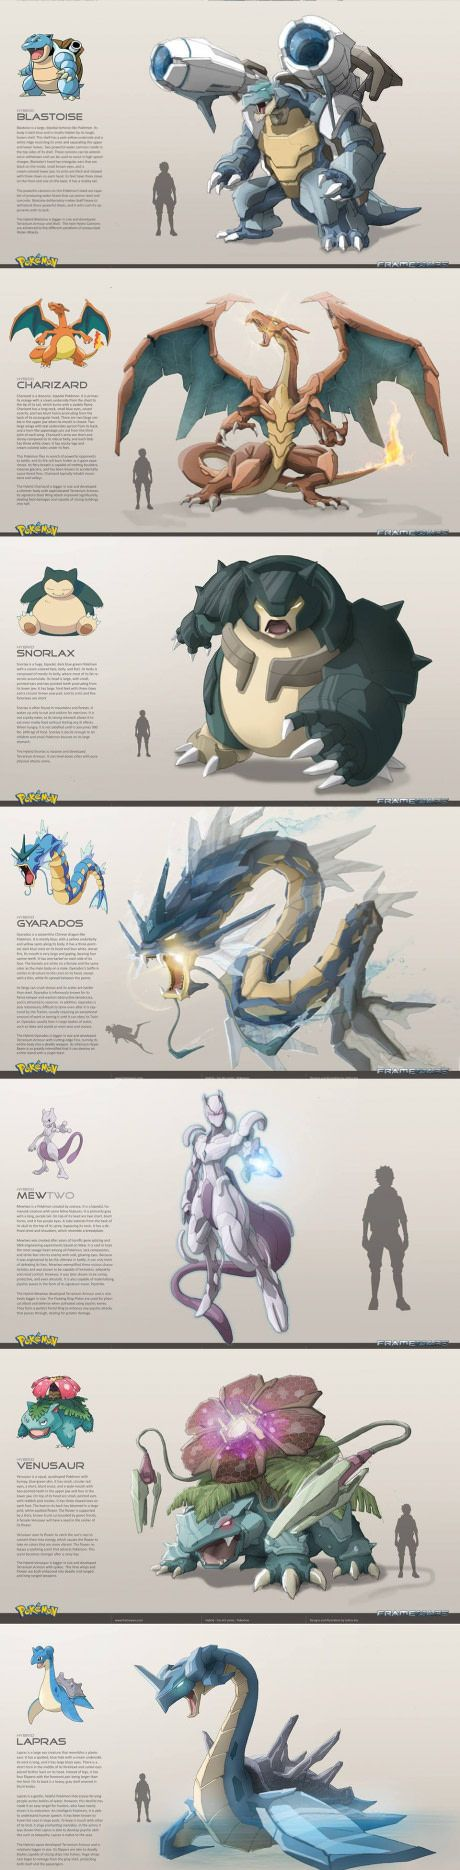 Mechanized Pokemon, so badass (By Frame Wars)